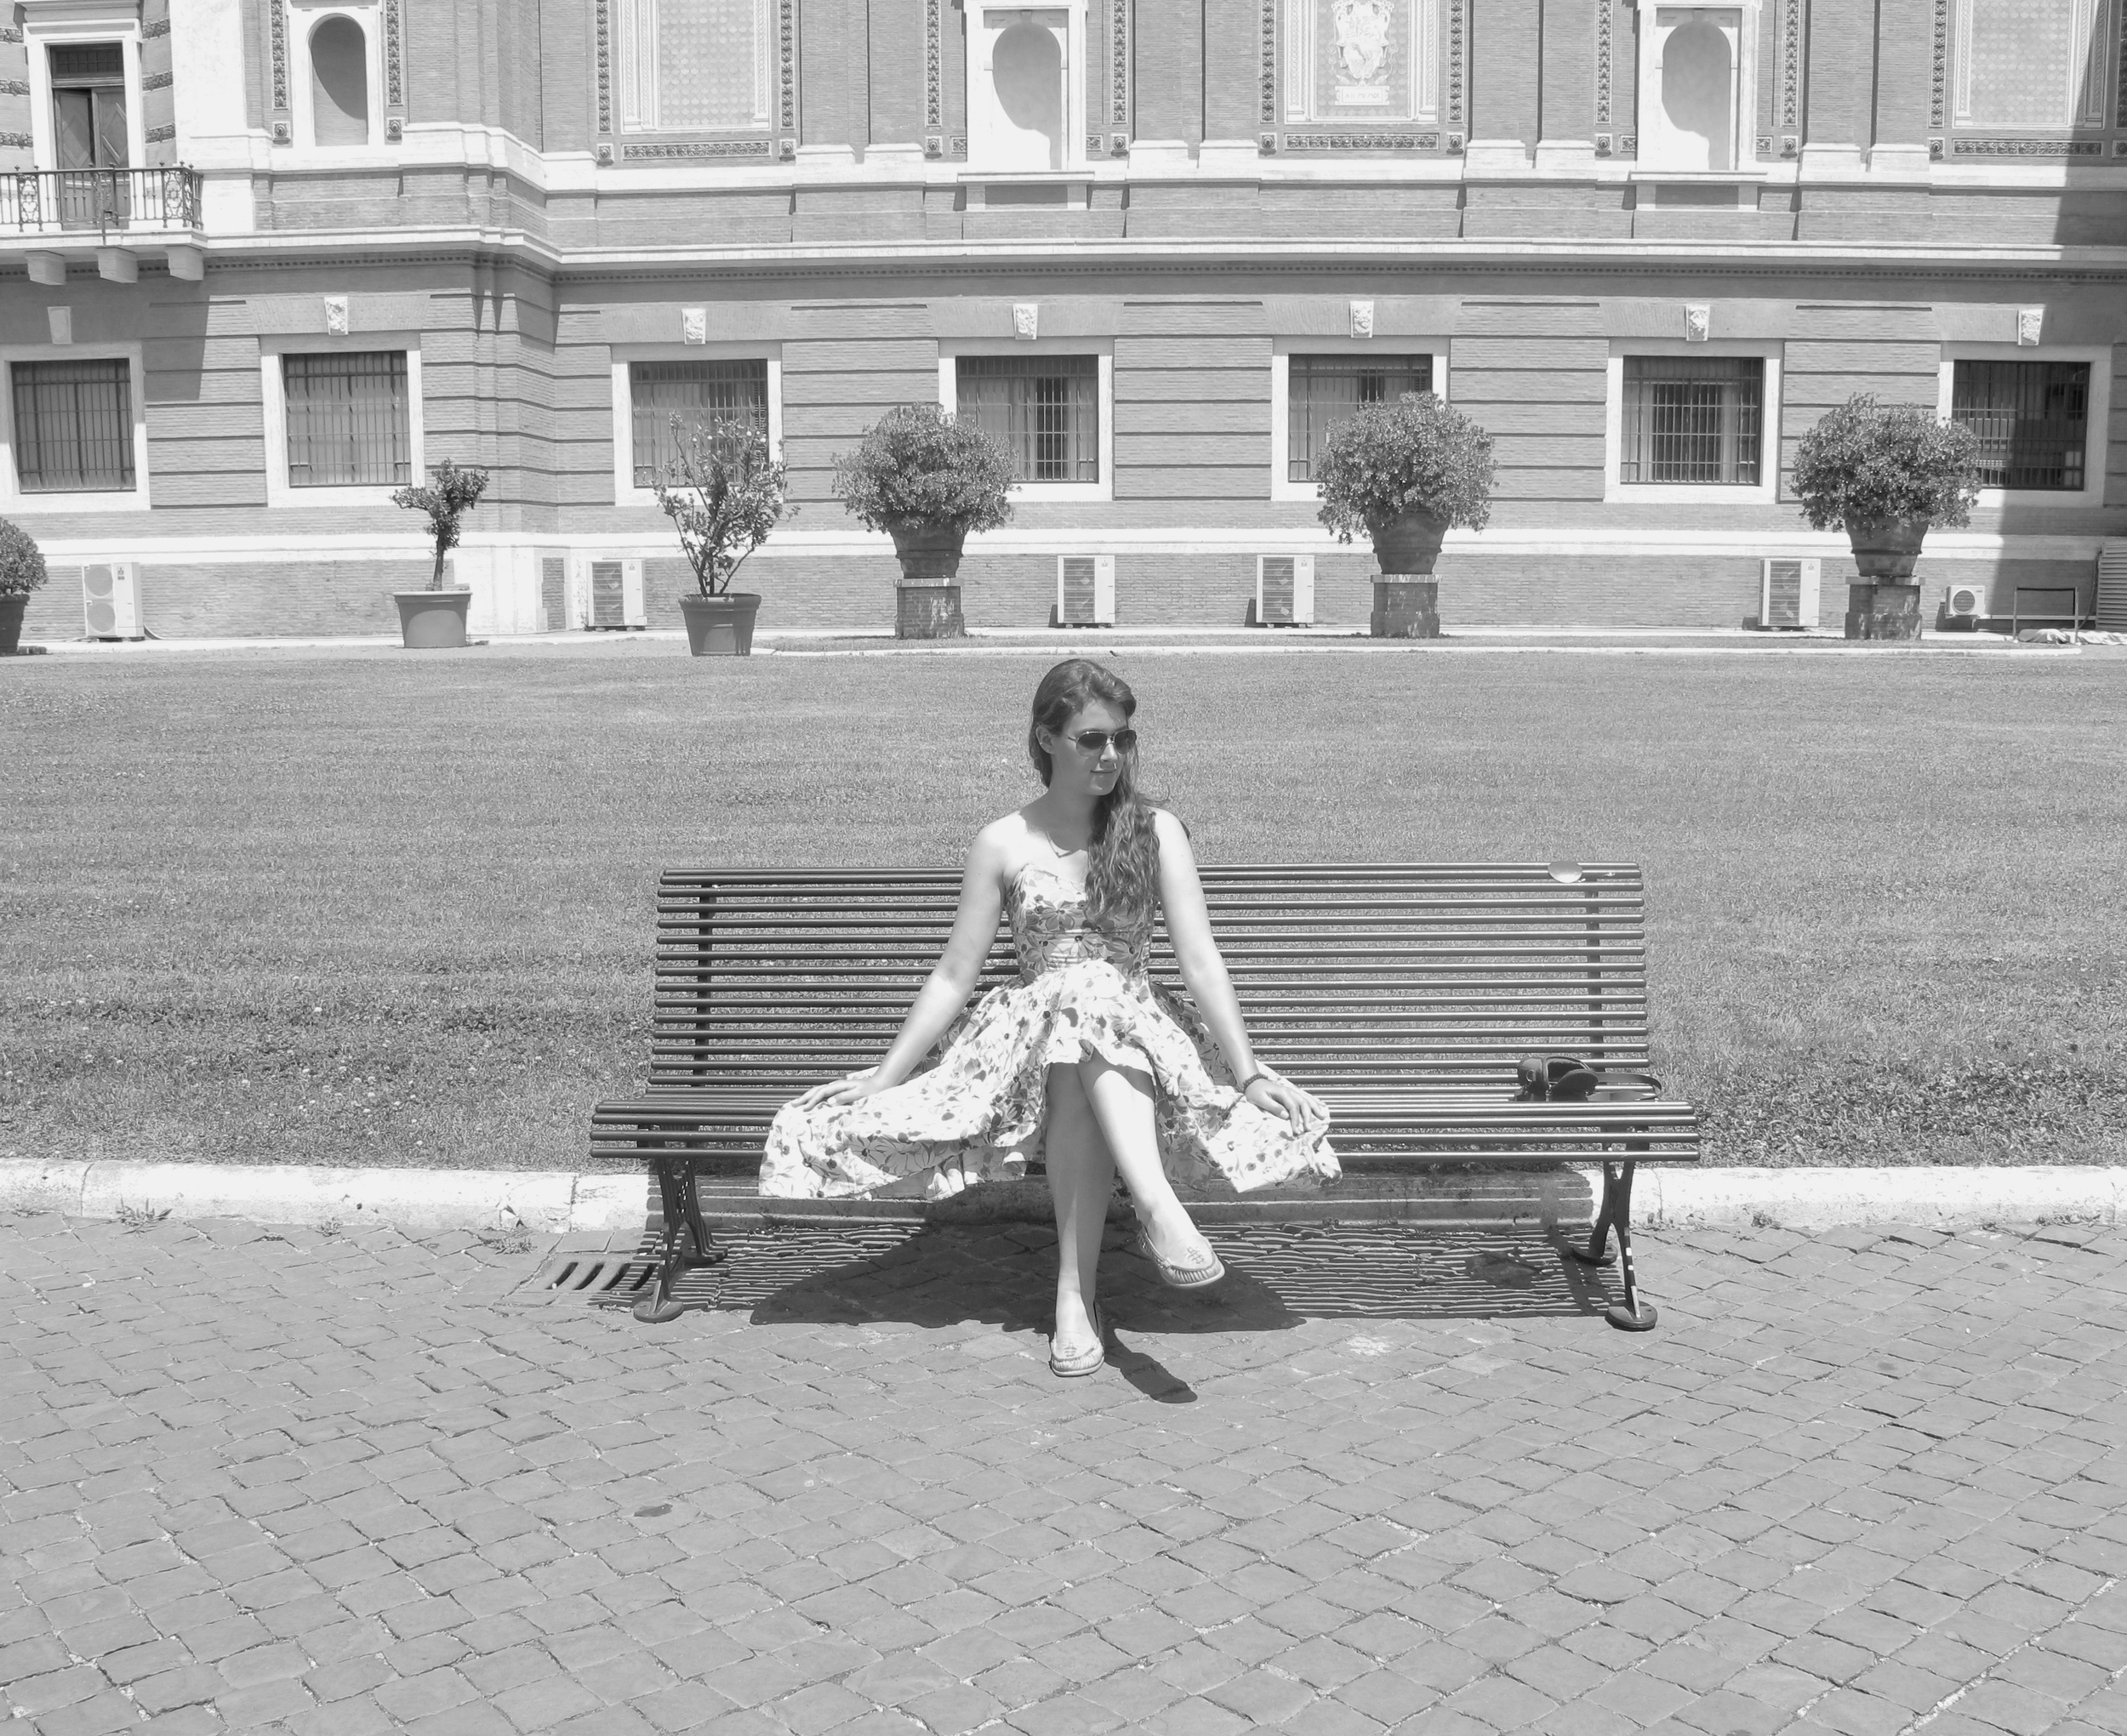 Sitting in the courtyard of the Vatican